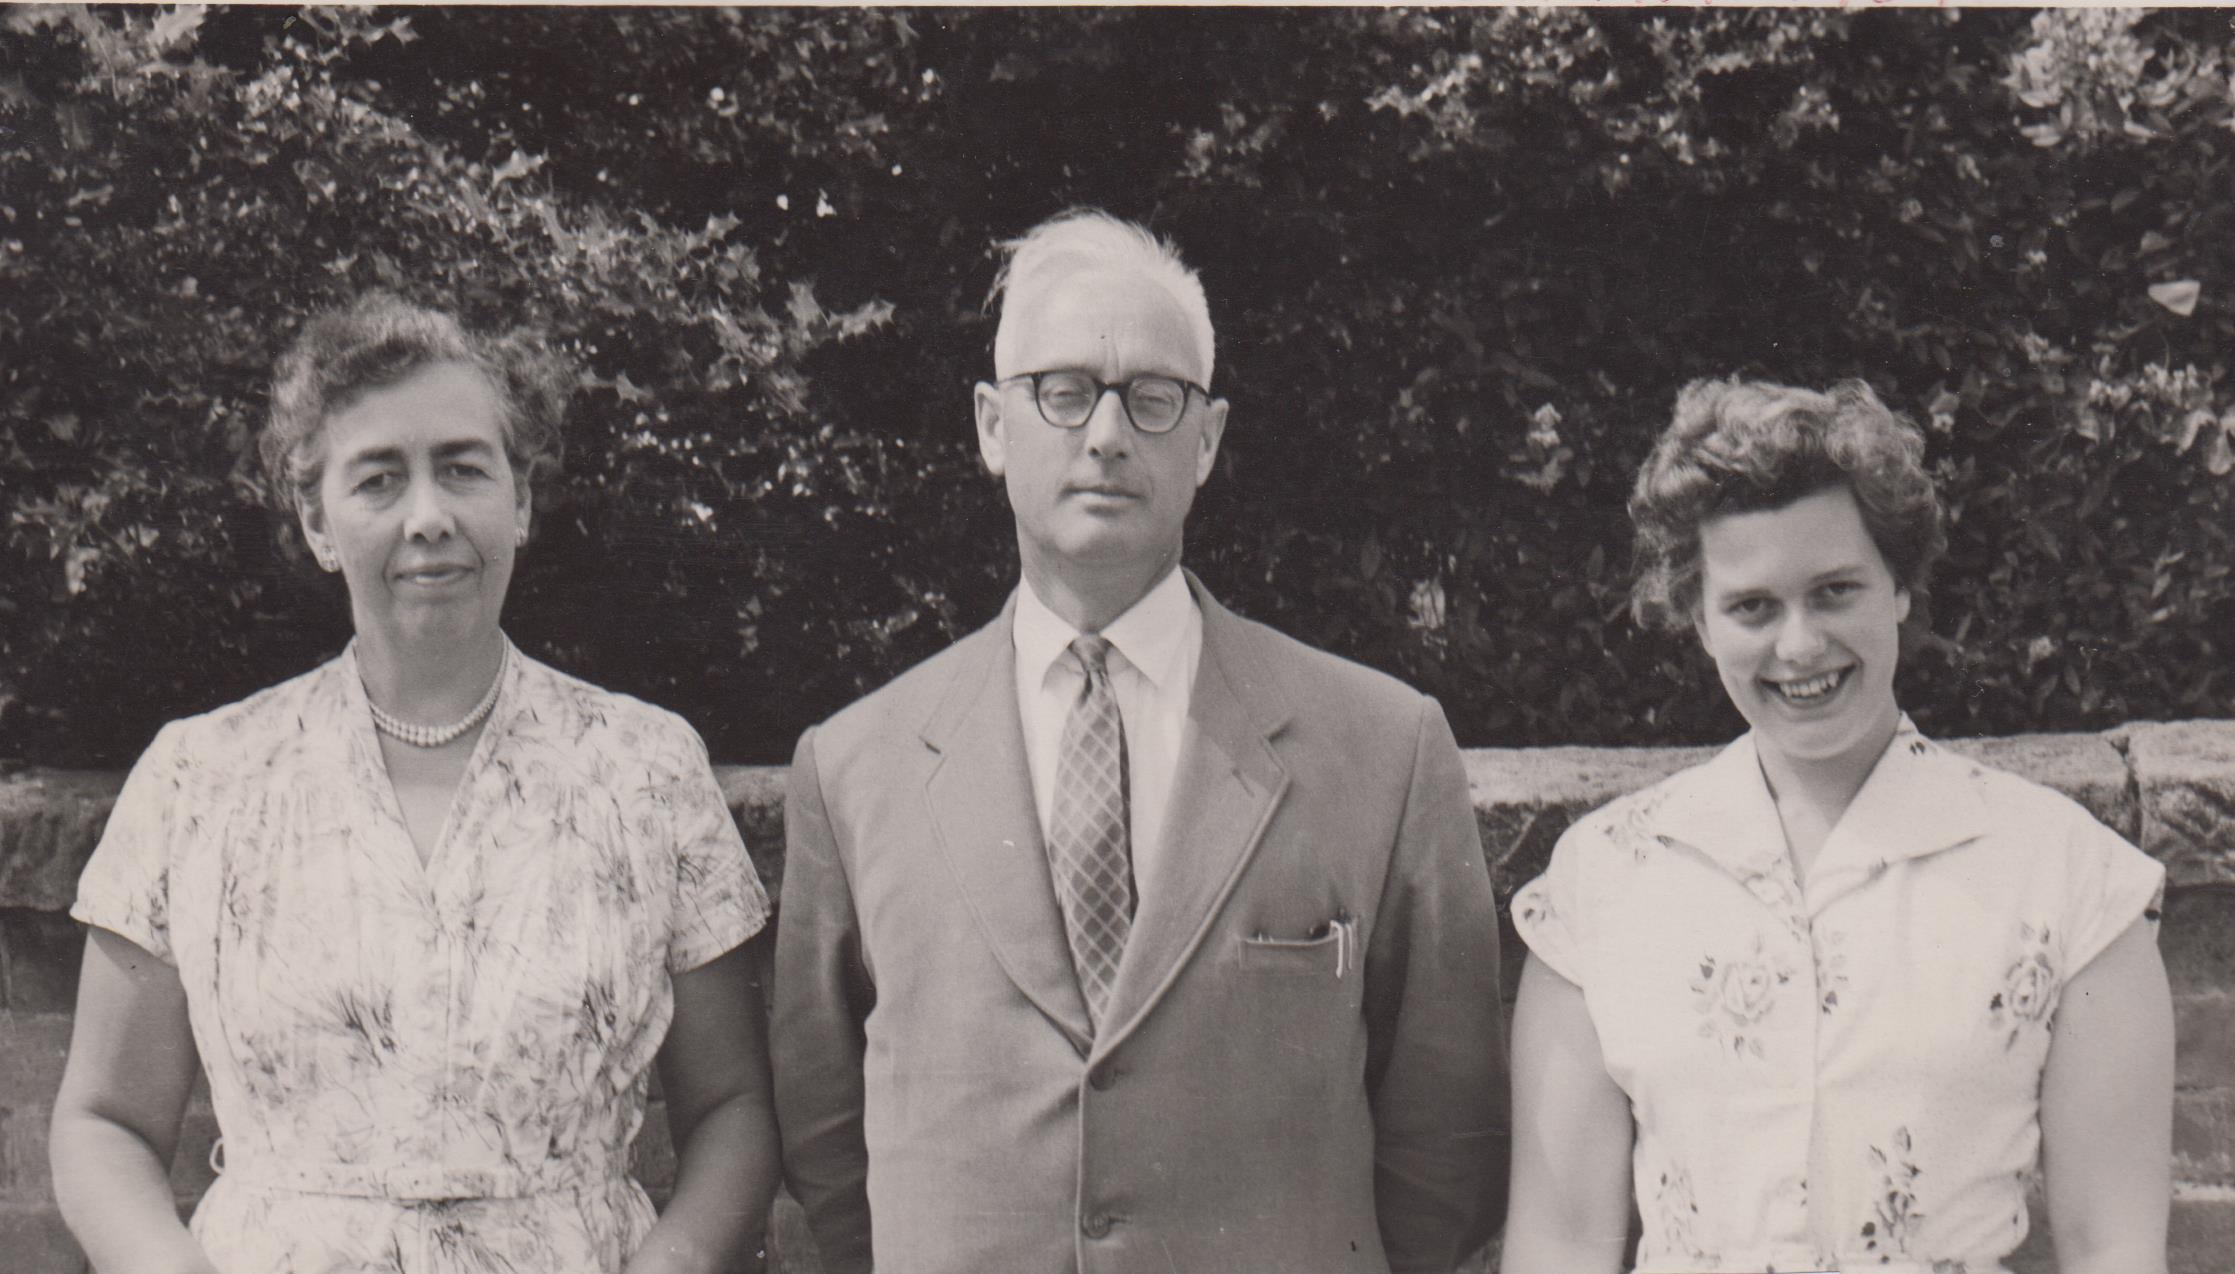 school_teachers_summer_1959_001.jpg